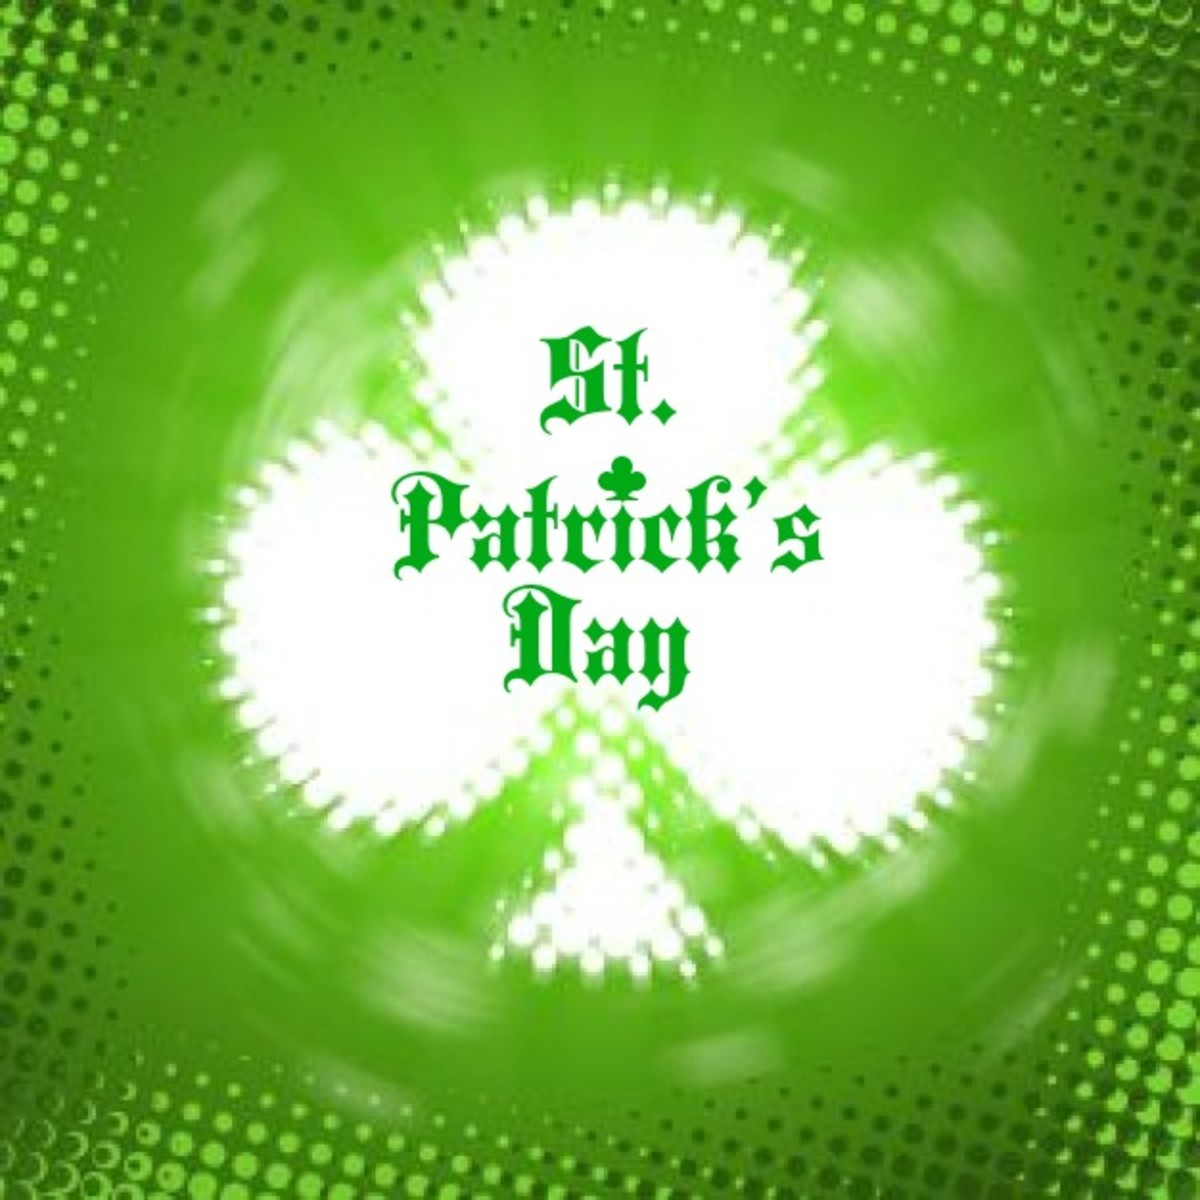 'St. Patrick's Day' on Shamrock Image